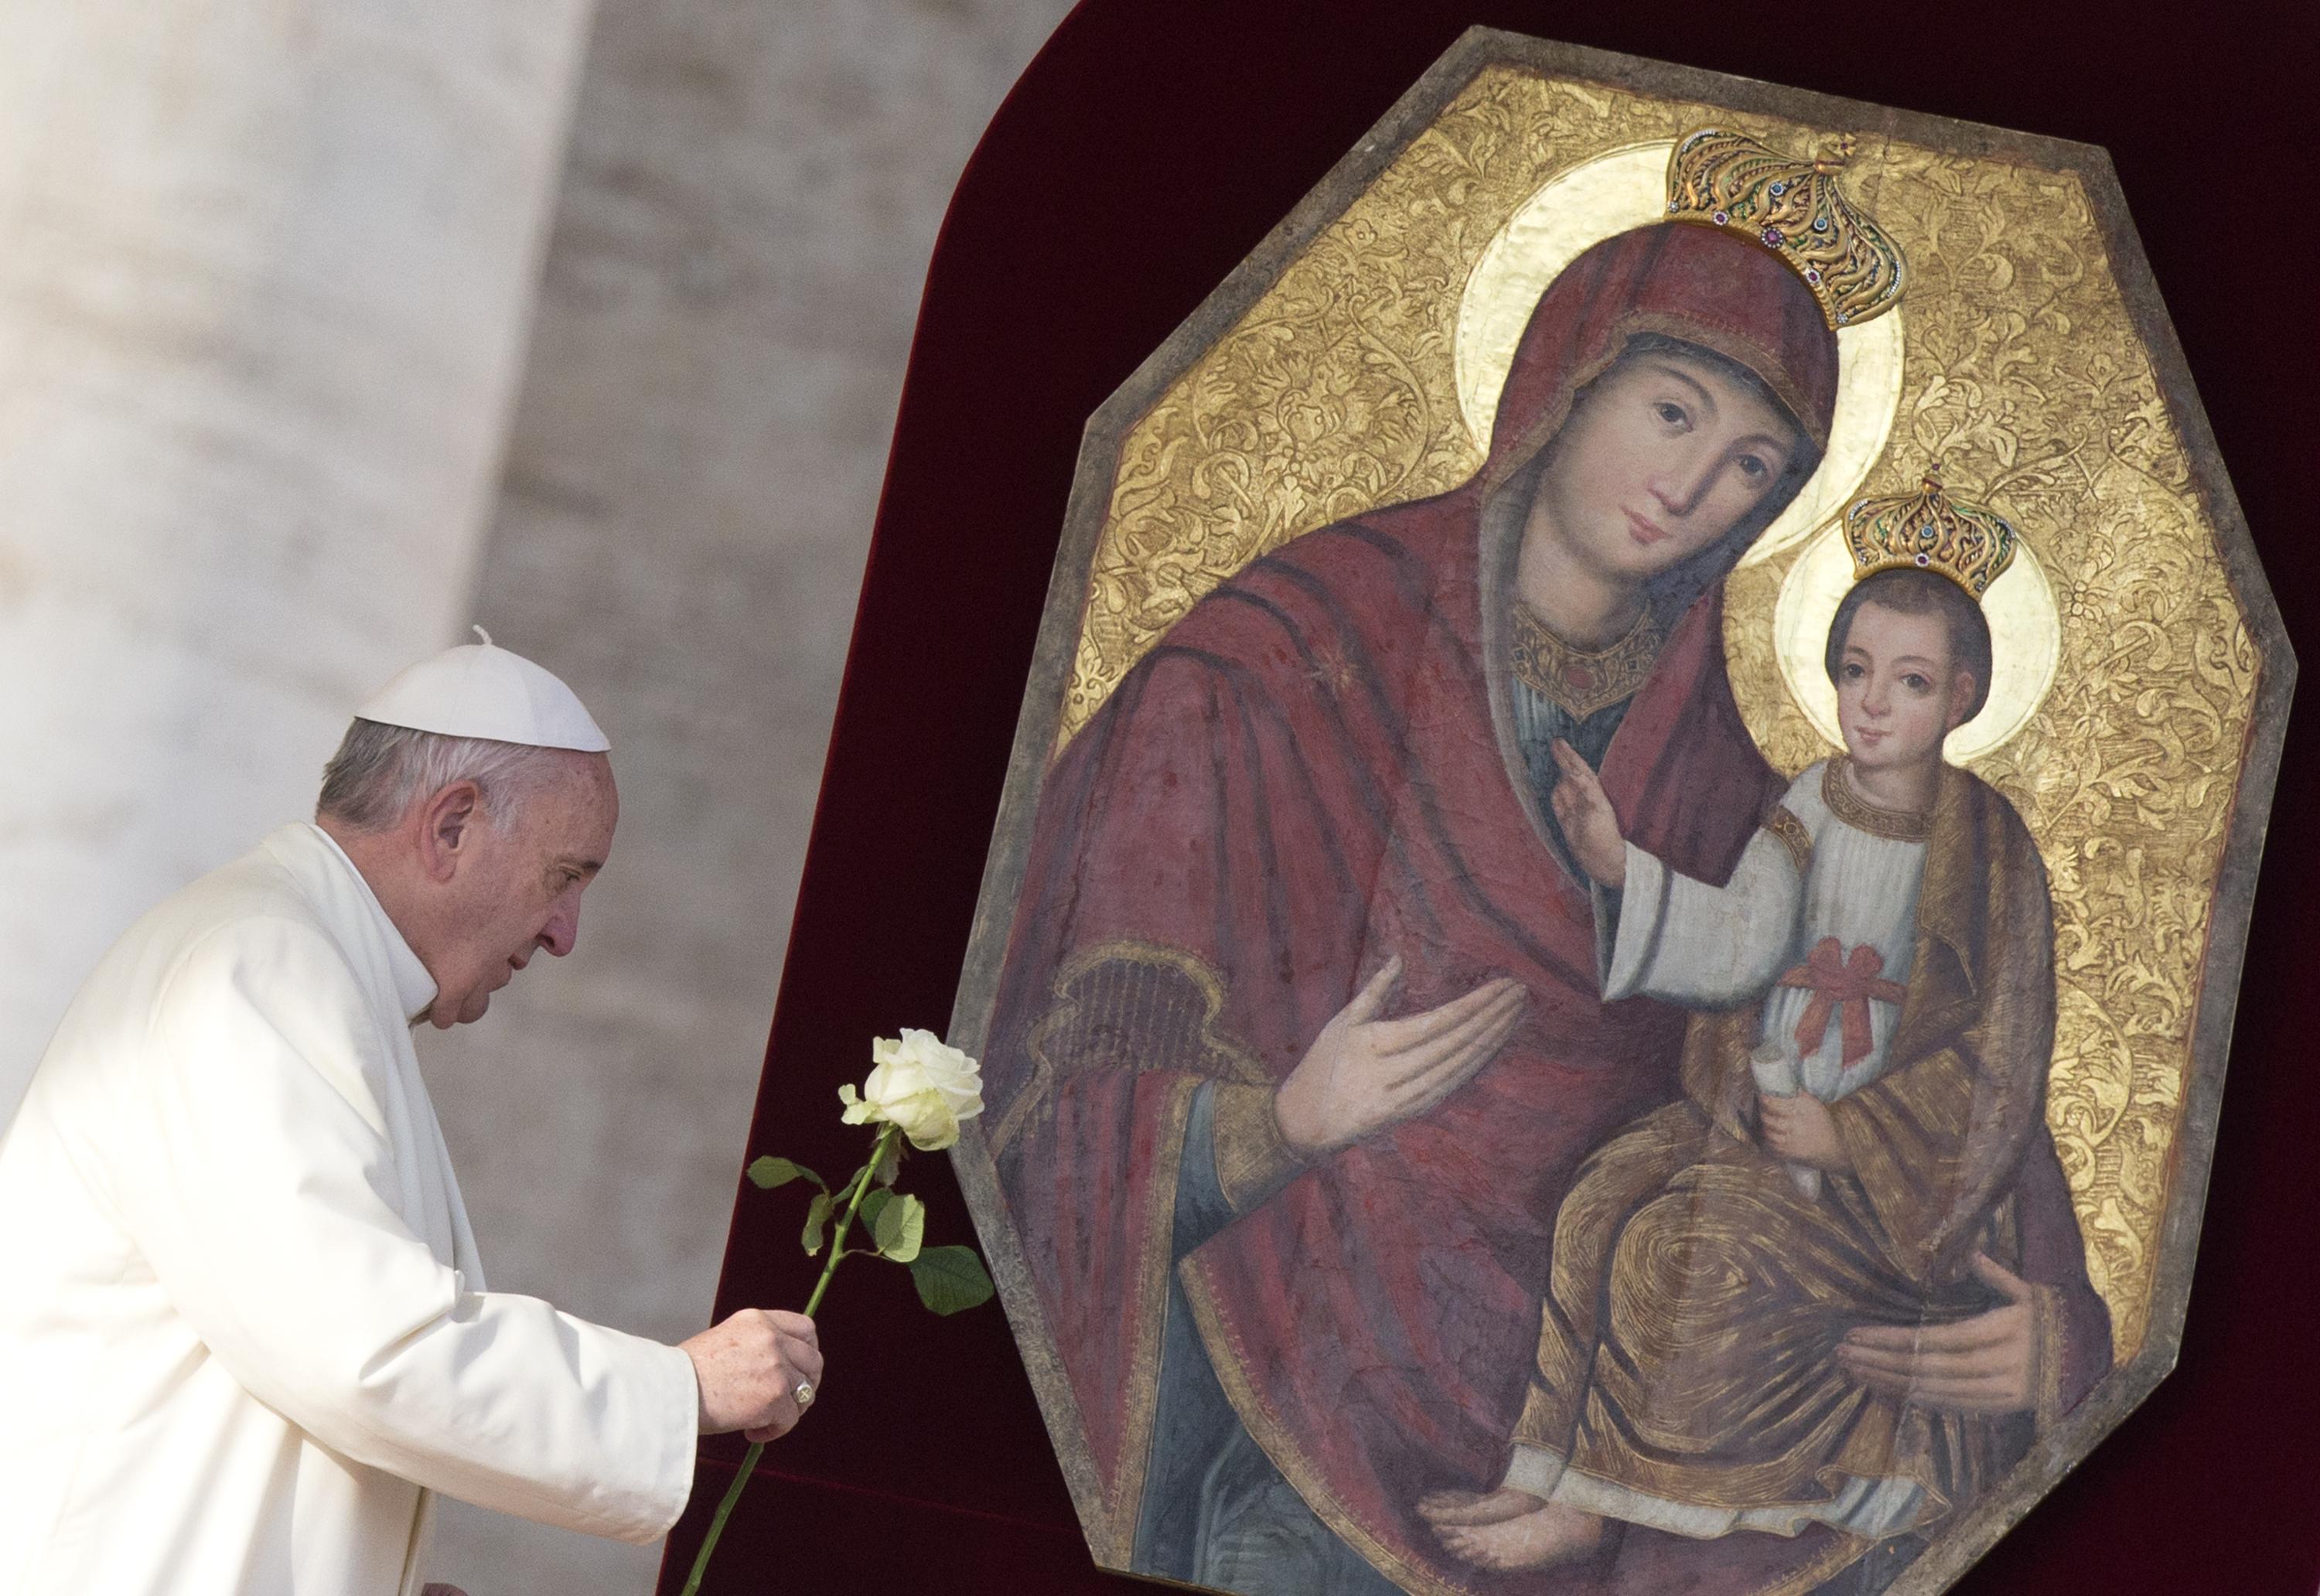 Pope Francis presents a rose at image of Holy Mary and Child Jesus prior his Wednesday General Audience